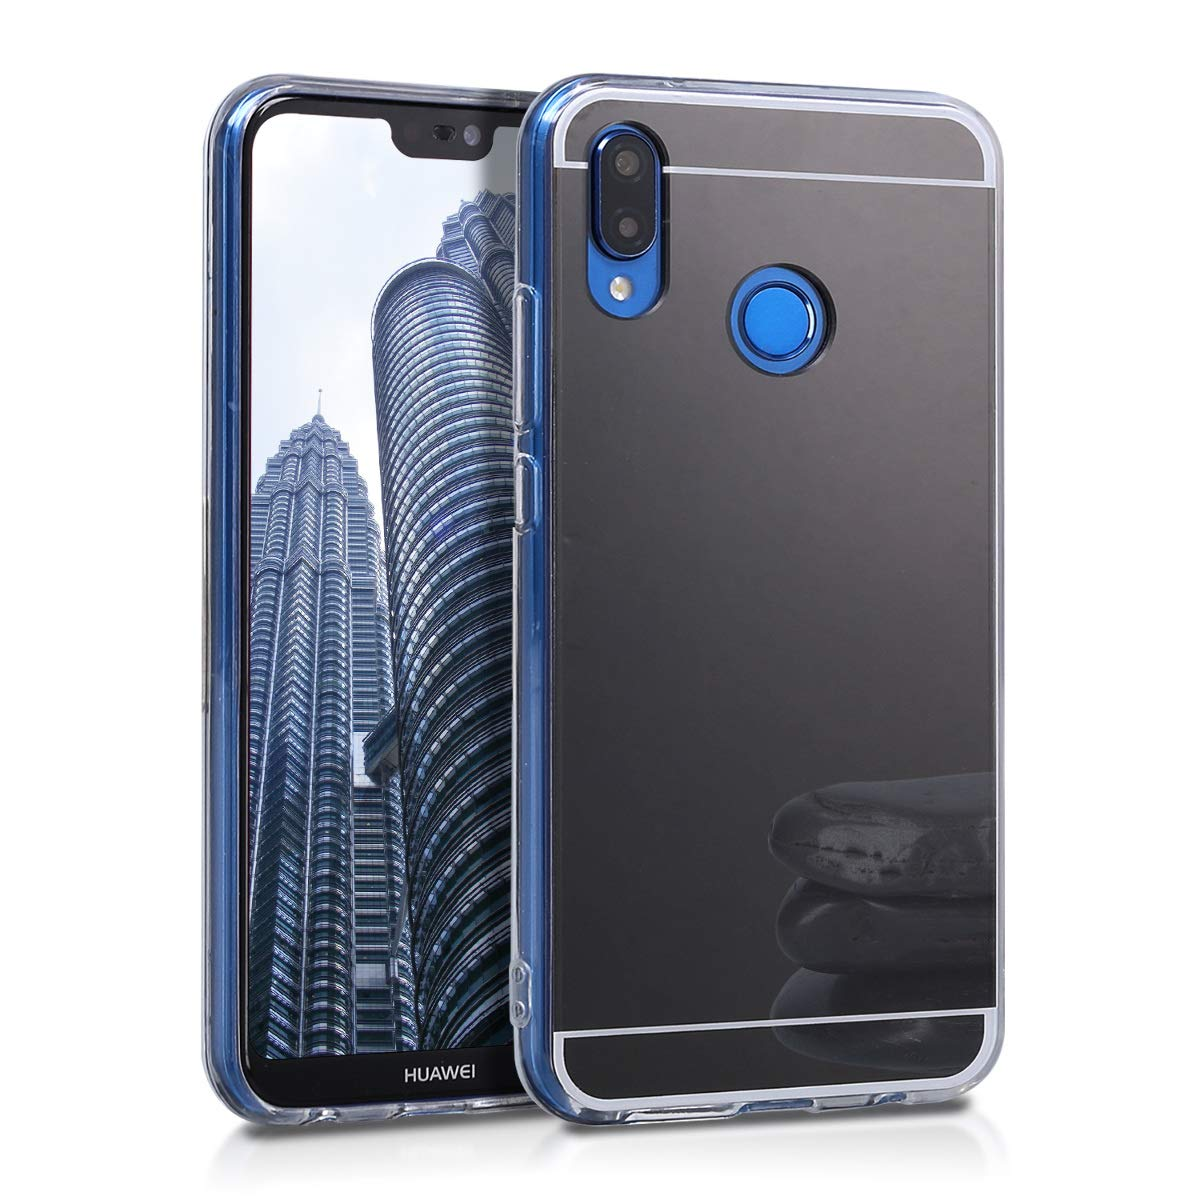 kwmobile Mirror Case for Huawei P20 Lite - TPU Silicone Bumper Protective Cover Reflective Back Case - Black